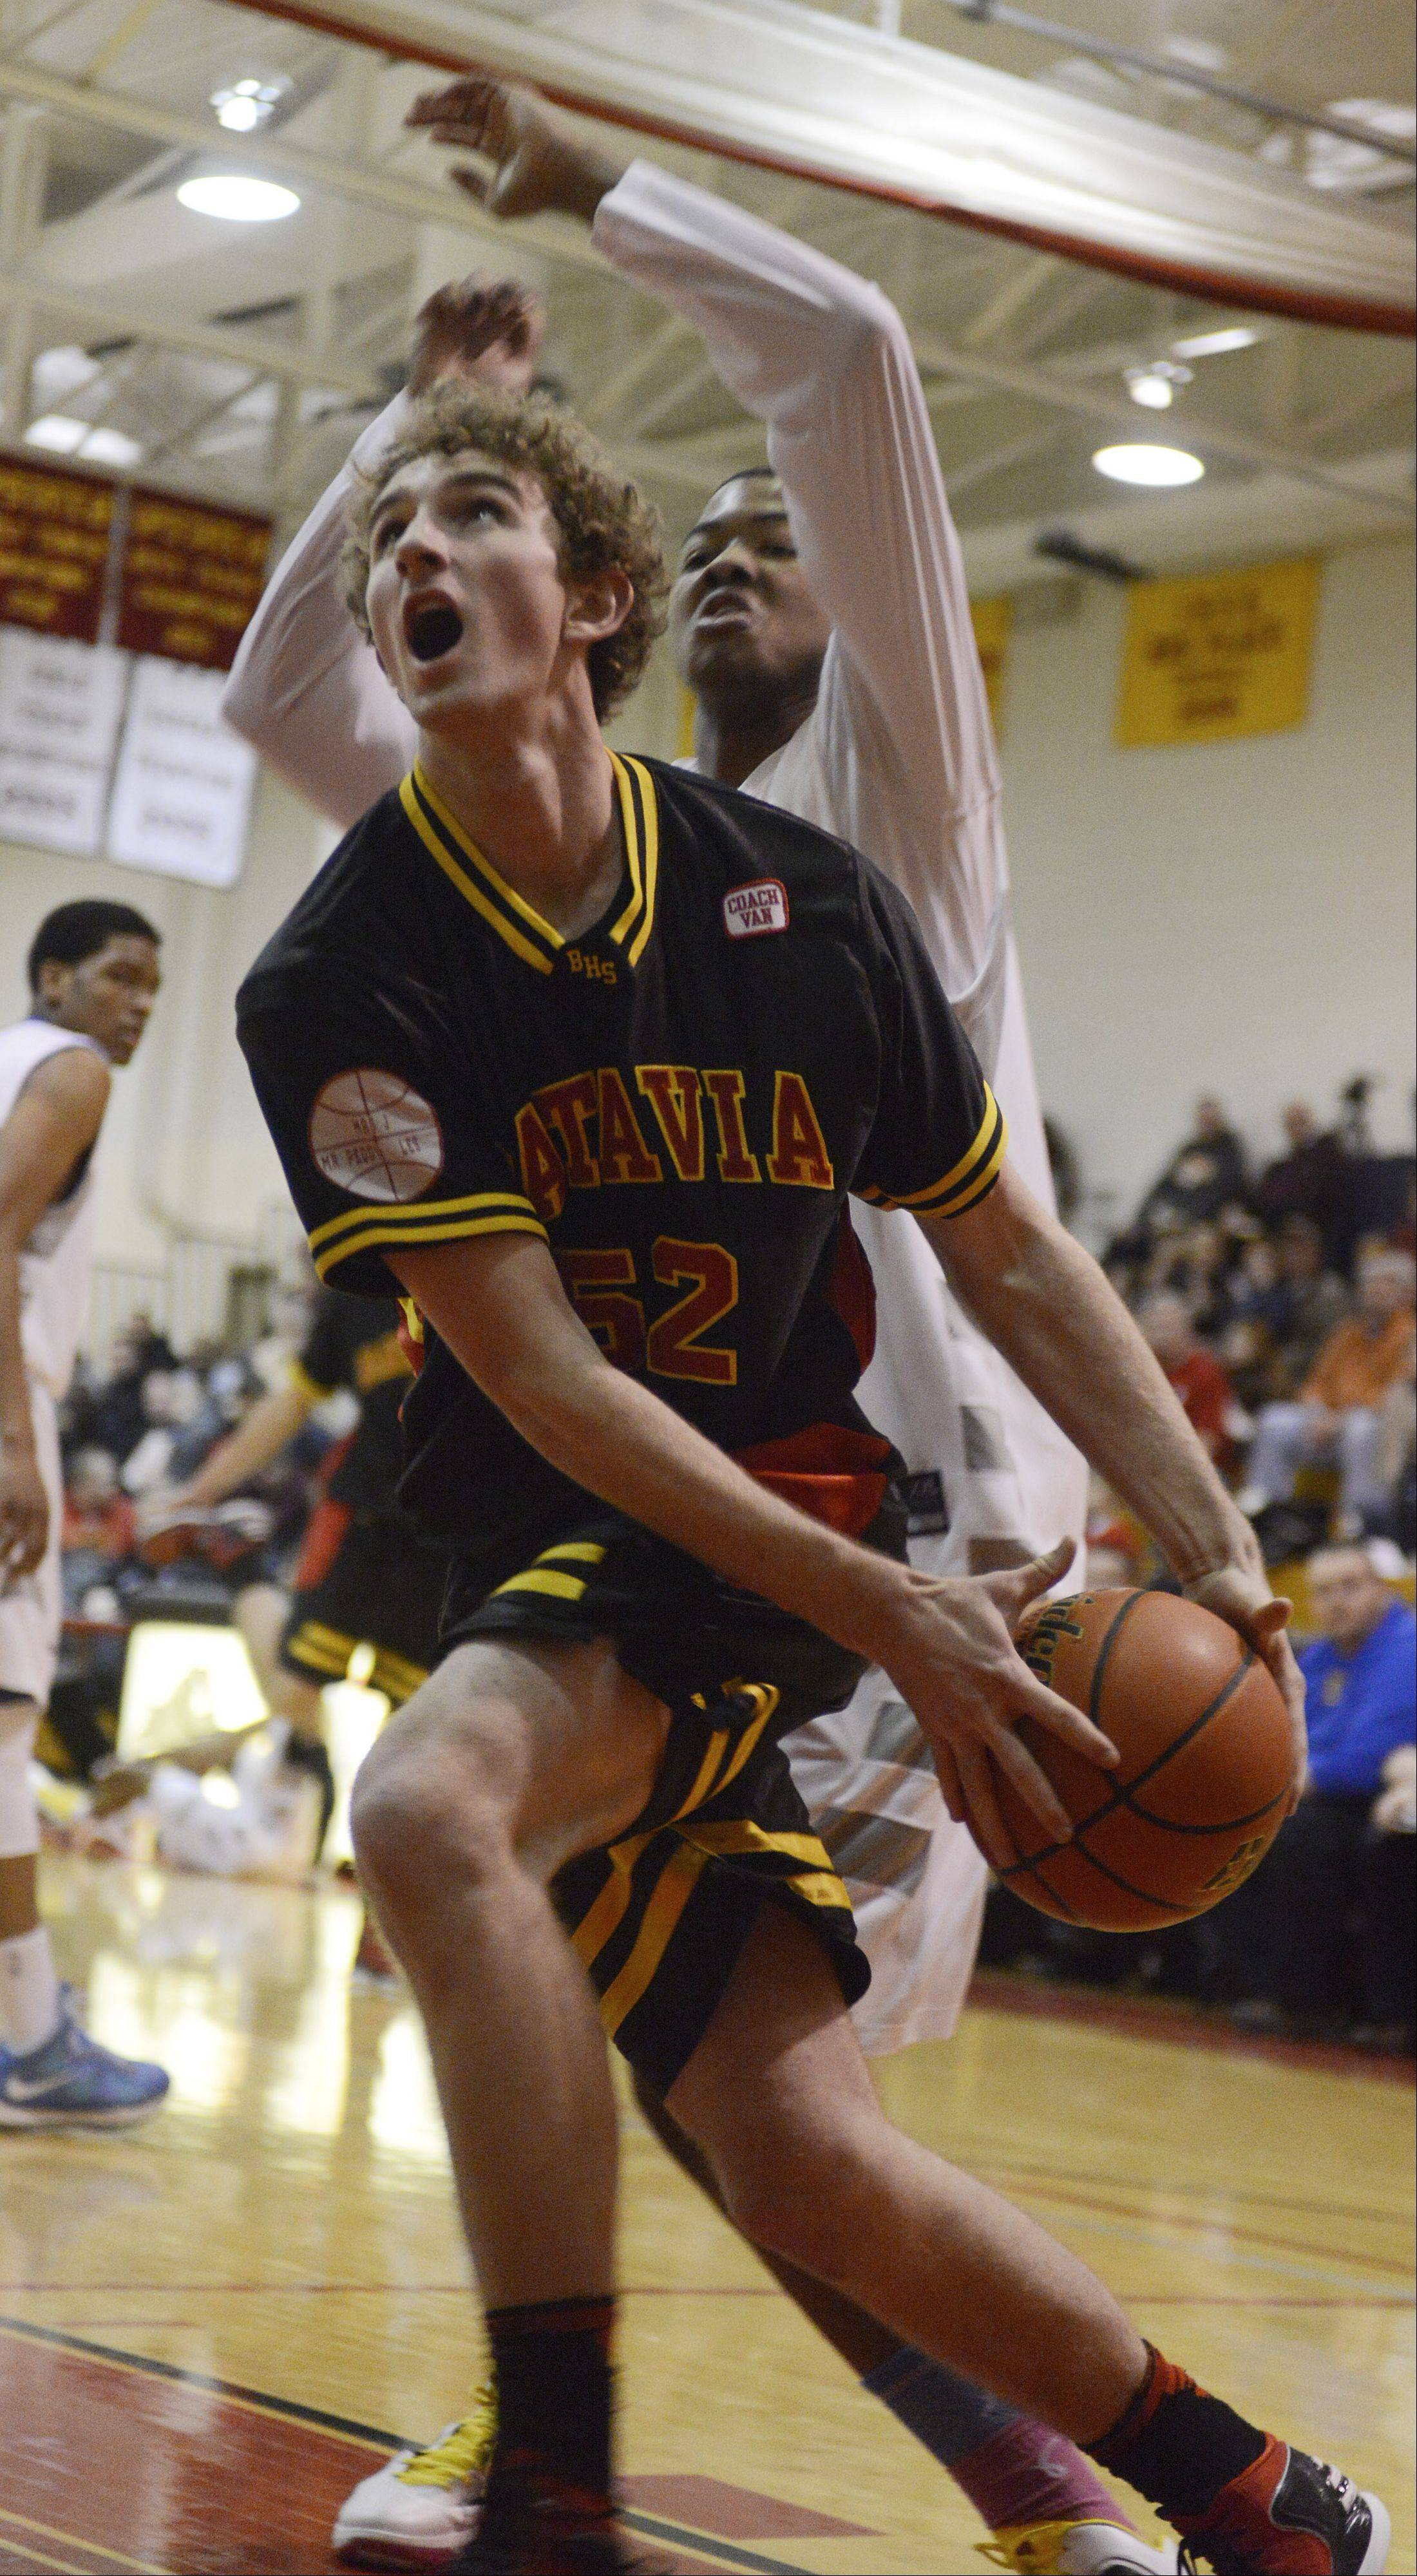 Batavia's Luke Horton drives to the basket against De La Salle during the 20th anniversary Night of Hoops at Batavia High School Saturday night.